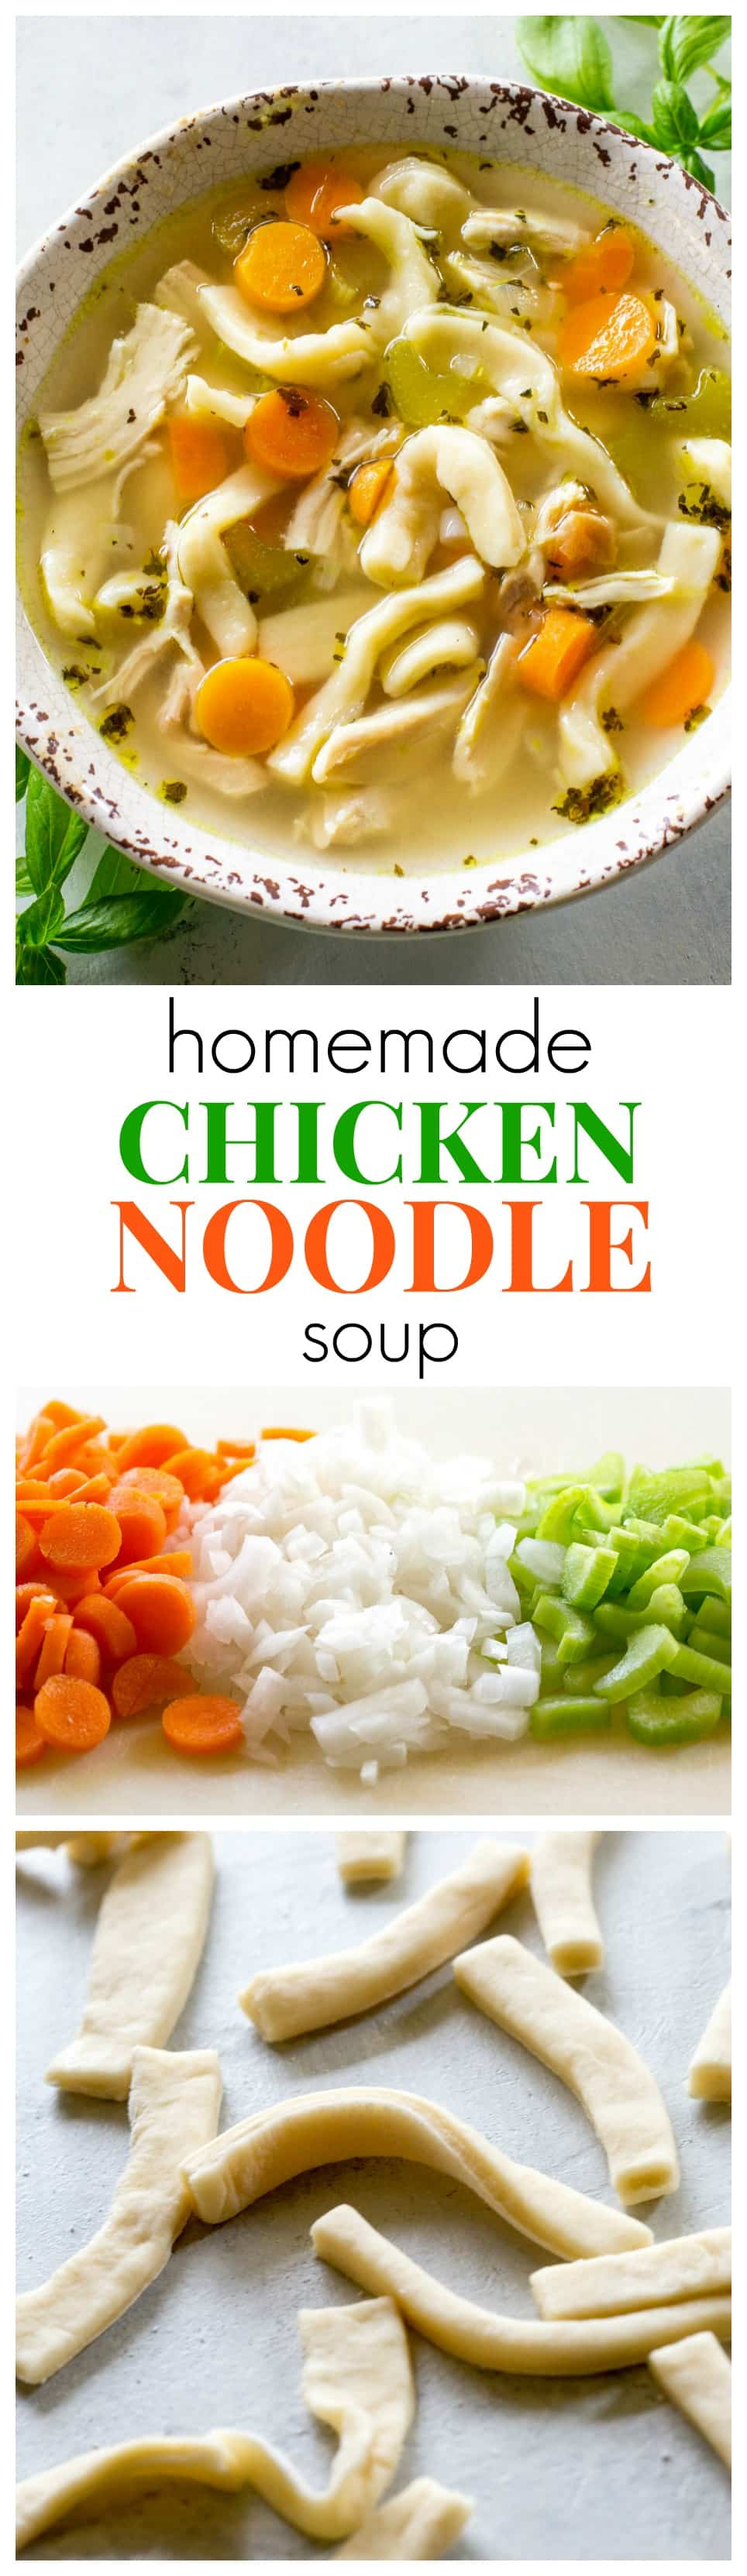 Homemade chicken noodle soup a recipe for homemade noodles homemade chicken noodle soup tried and true comfort food a recipe for homemade noodles forumfinder